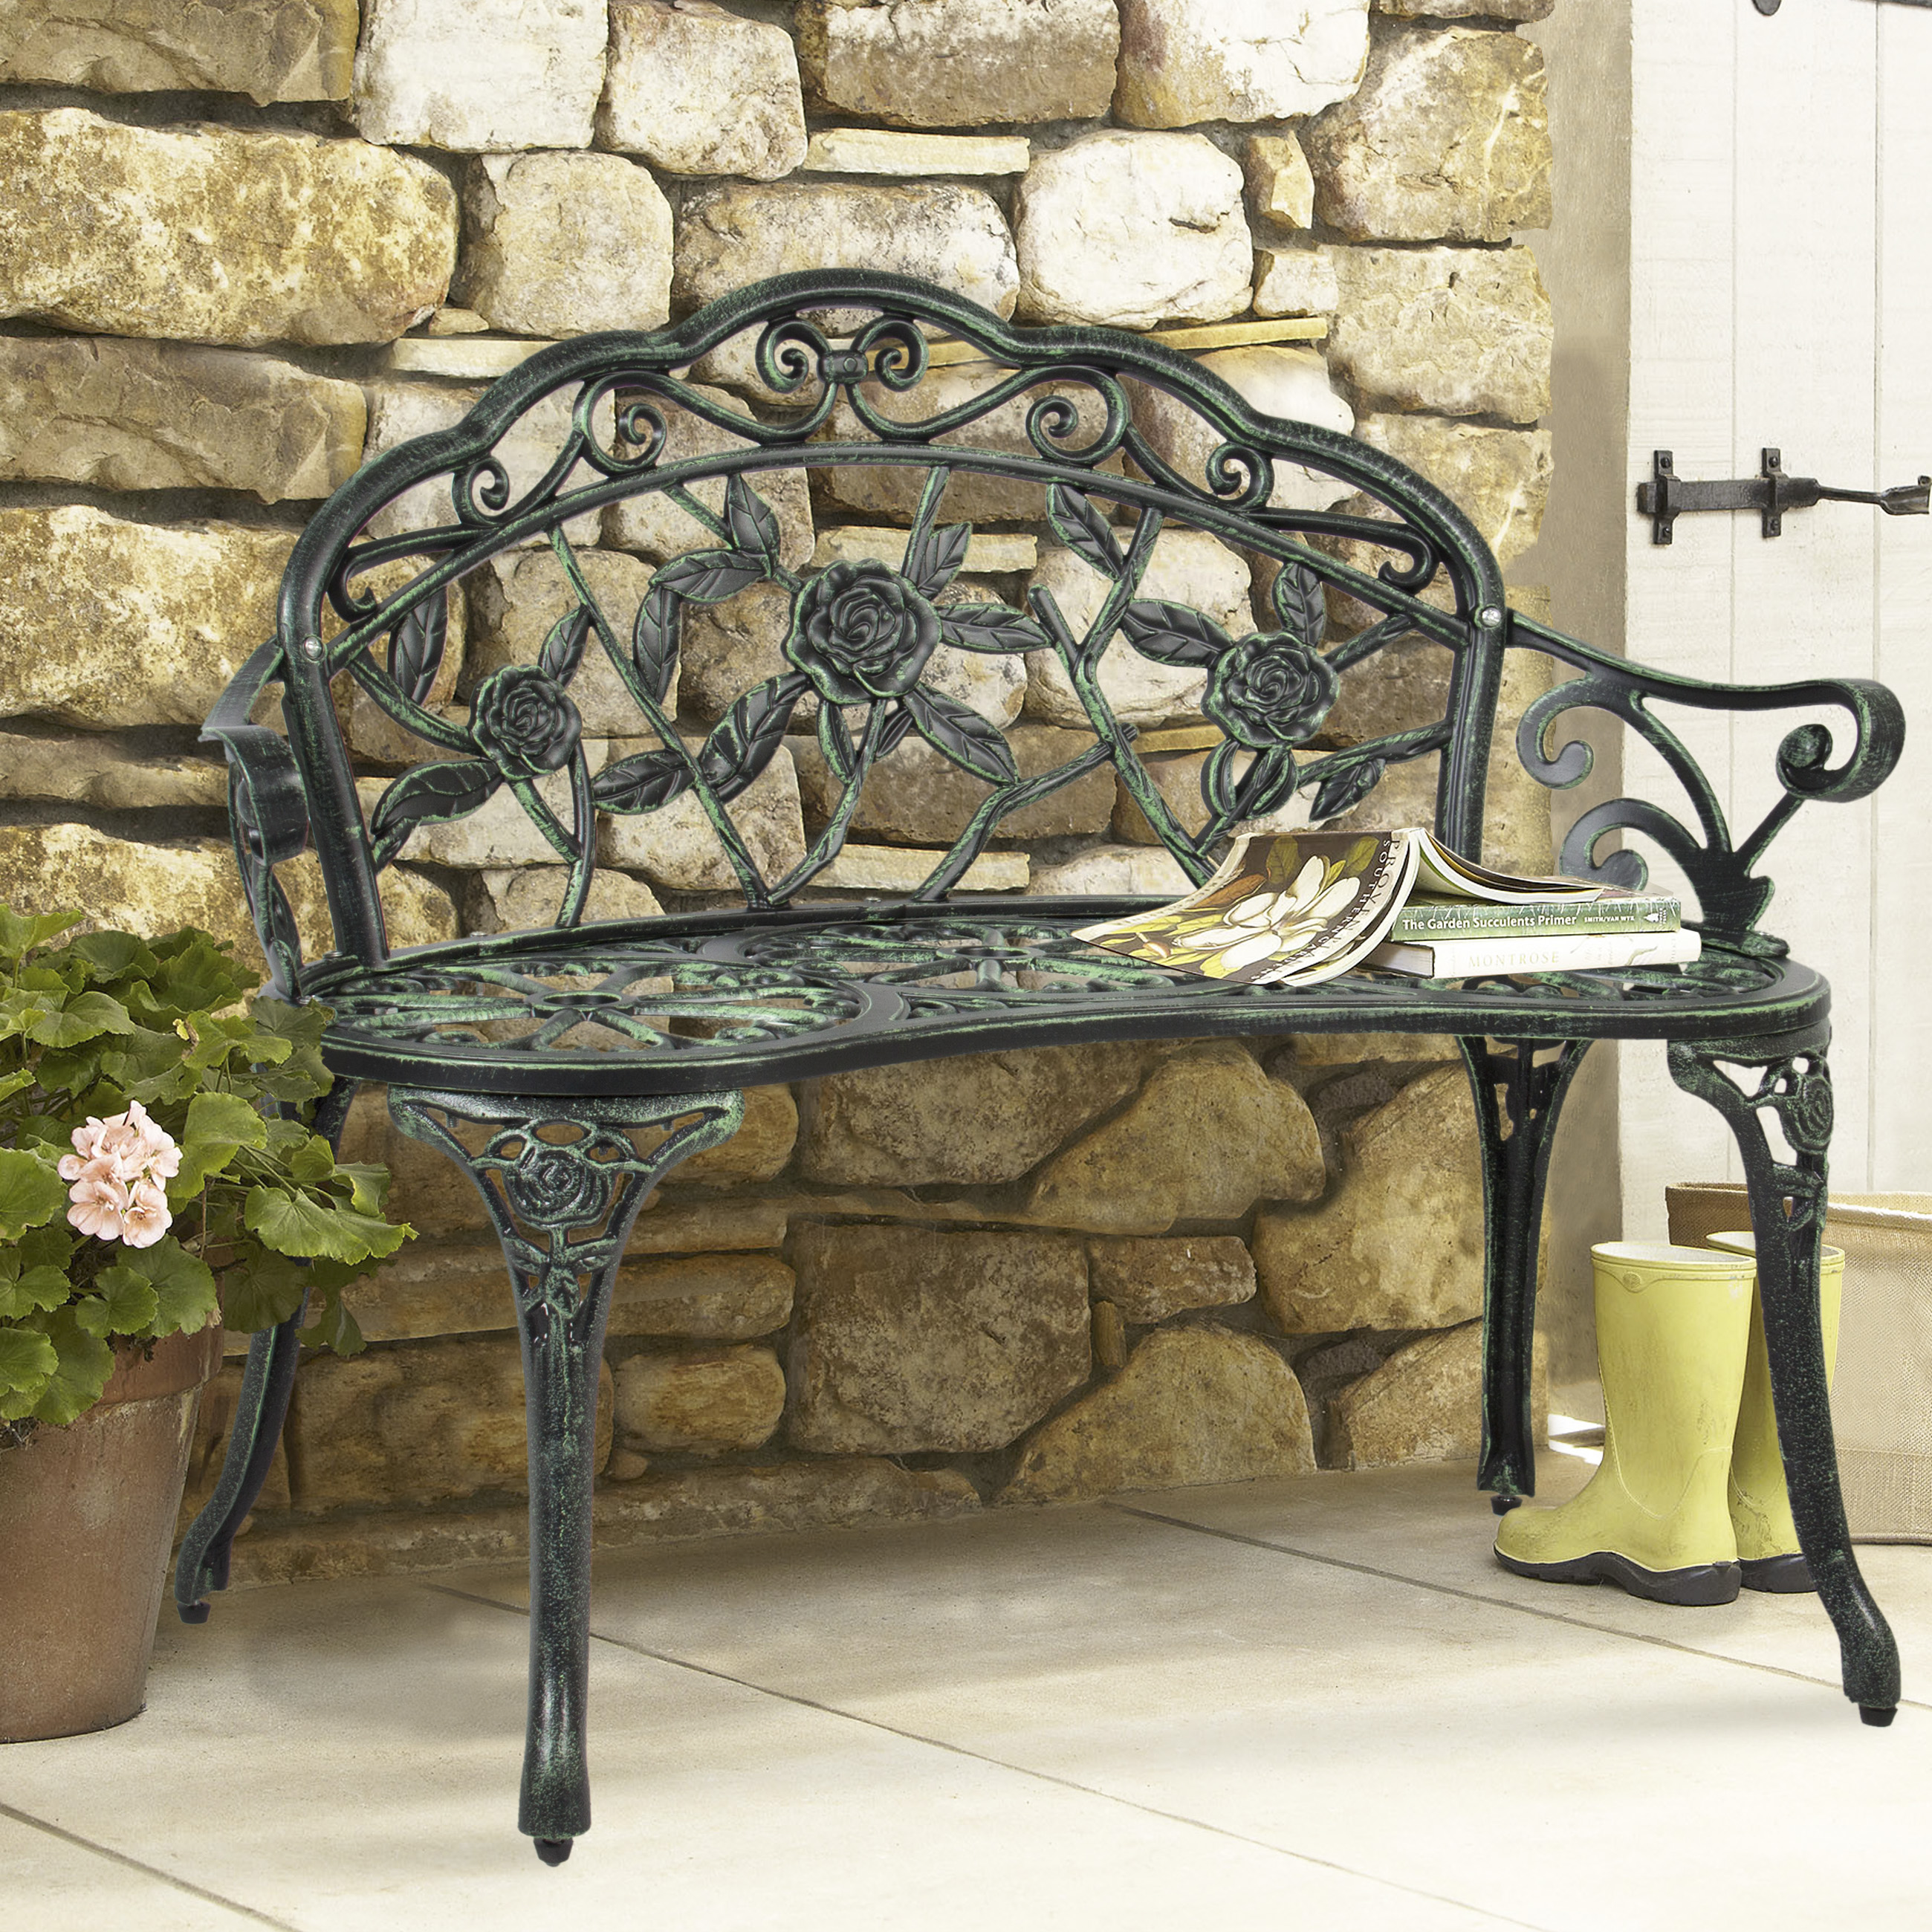 Best Choice Products Floral Rose Accented Metal Garden Patio Bench w  Antique Finish Black by Best Choice Products